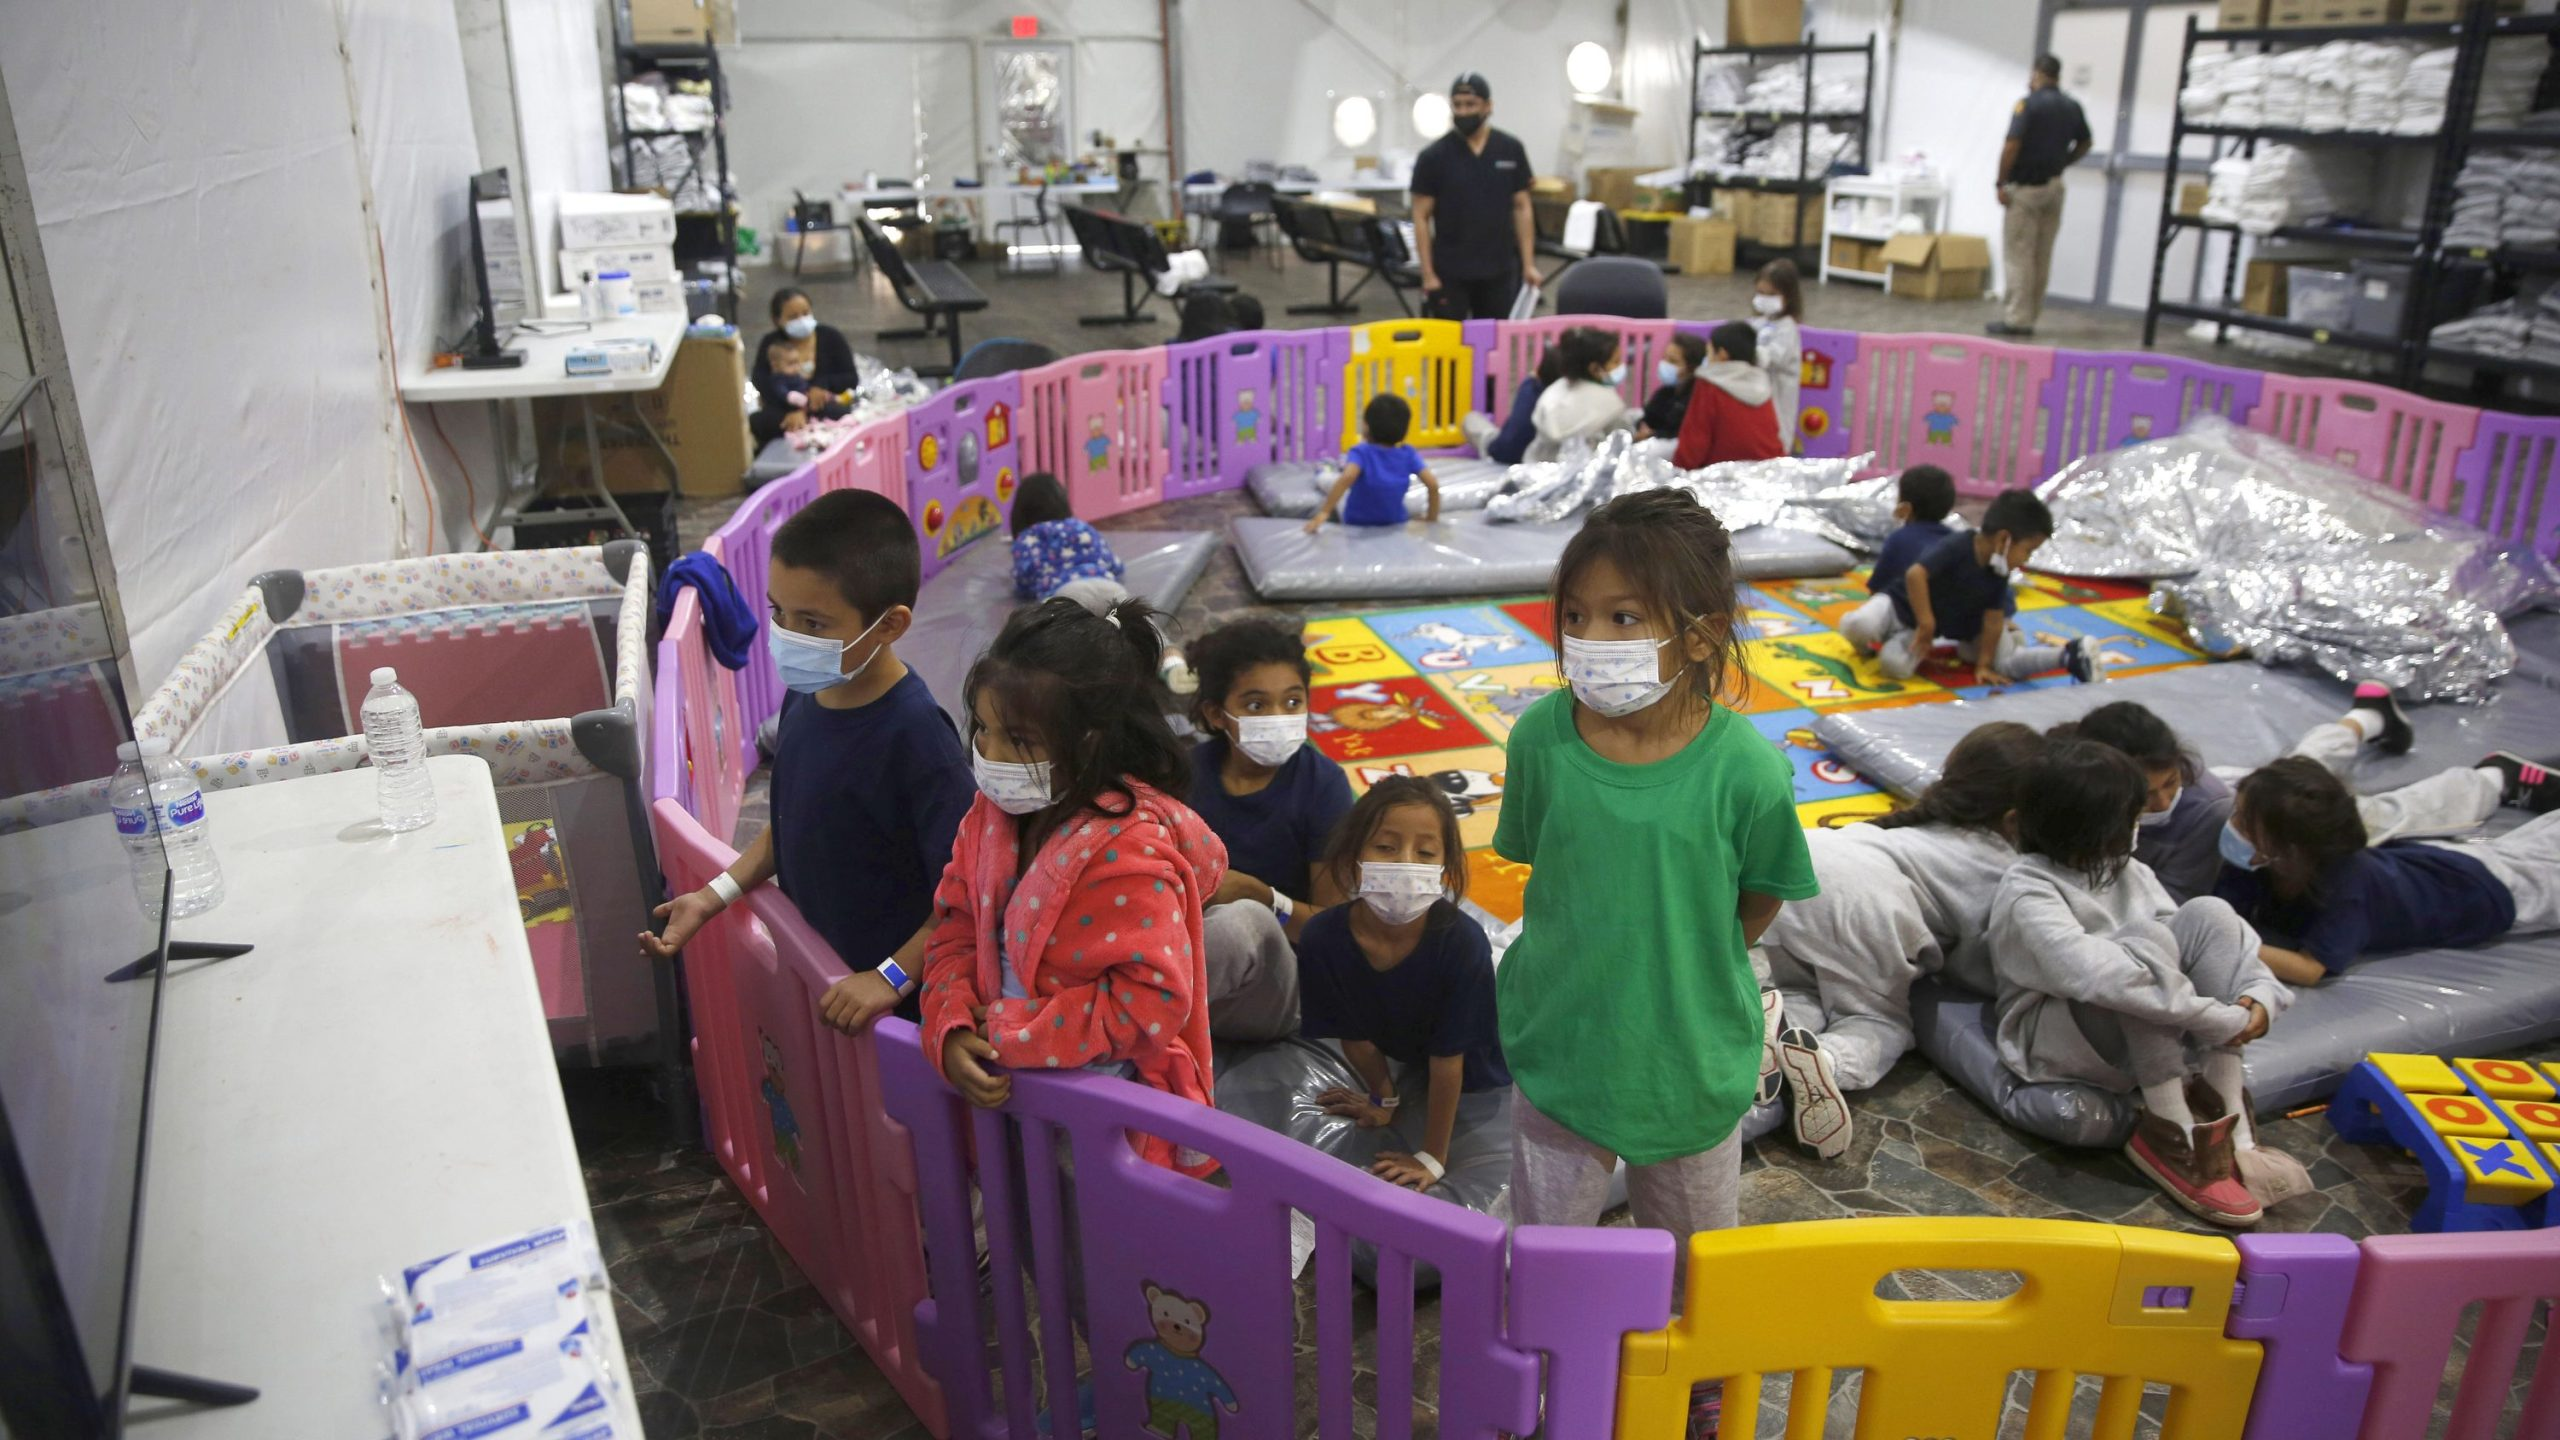 Young unaccompanied migrants, from ages 3 to 9, watch television inside a playpen at the U.S. Customs and Border Protection facility in Donna, Texas, the main detention center for unaccompanied children in the Rio Grande Valley. (Dario Lopez-Mills / Associated Press)